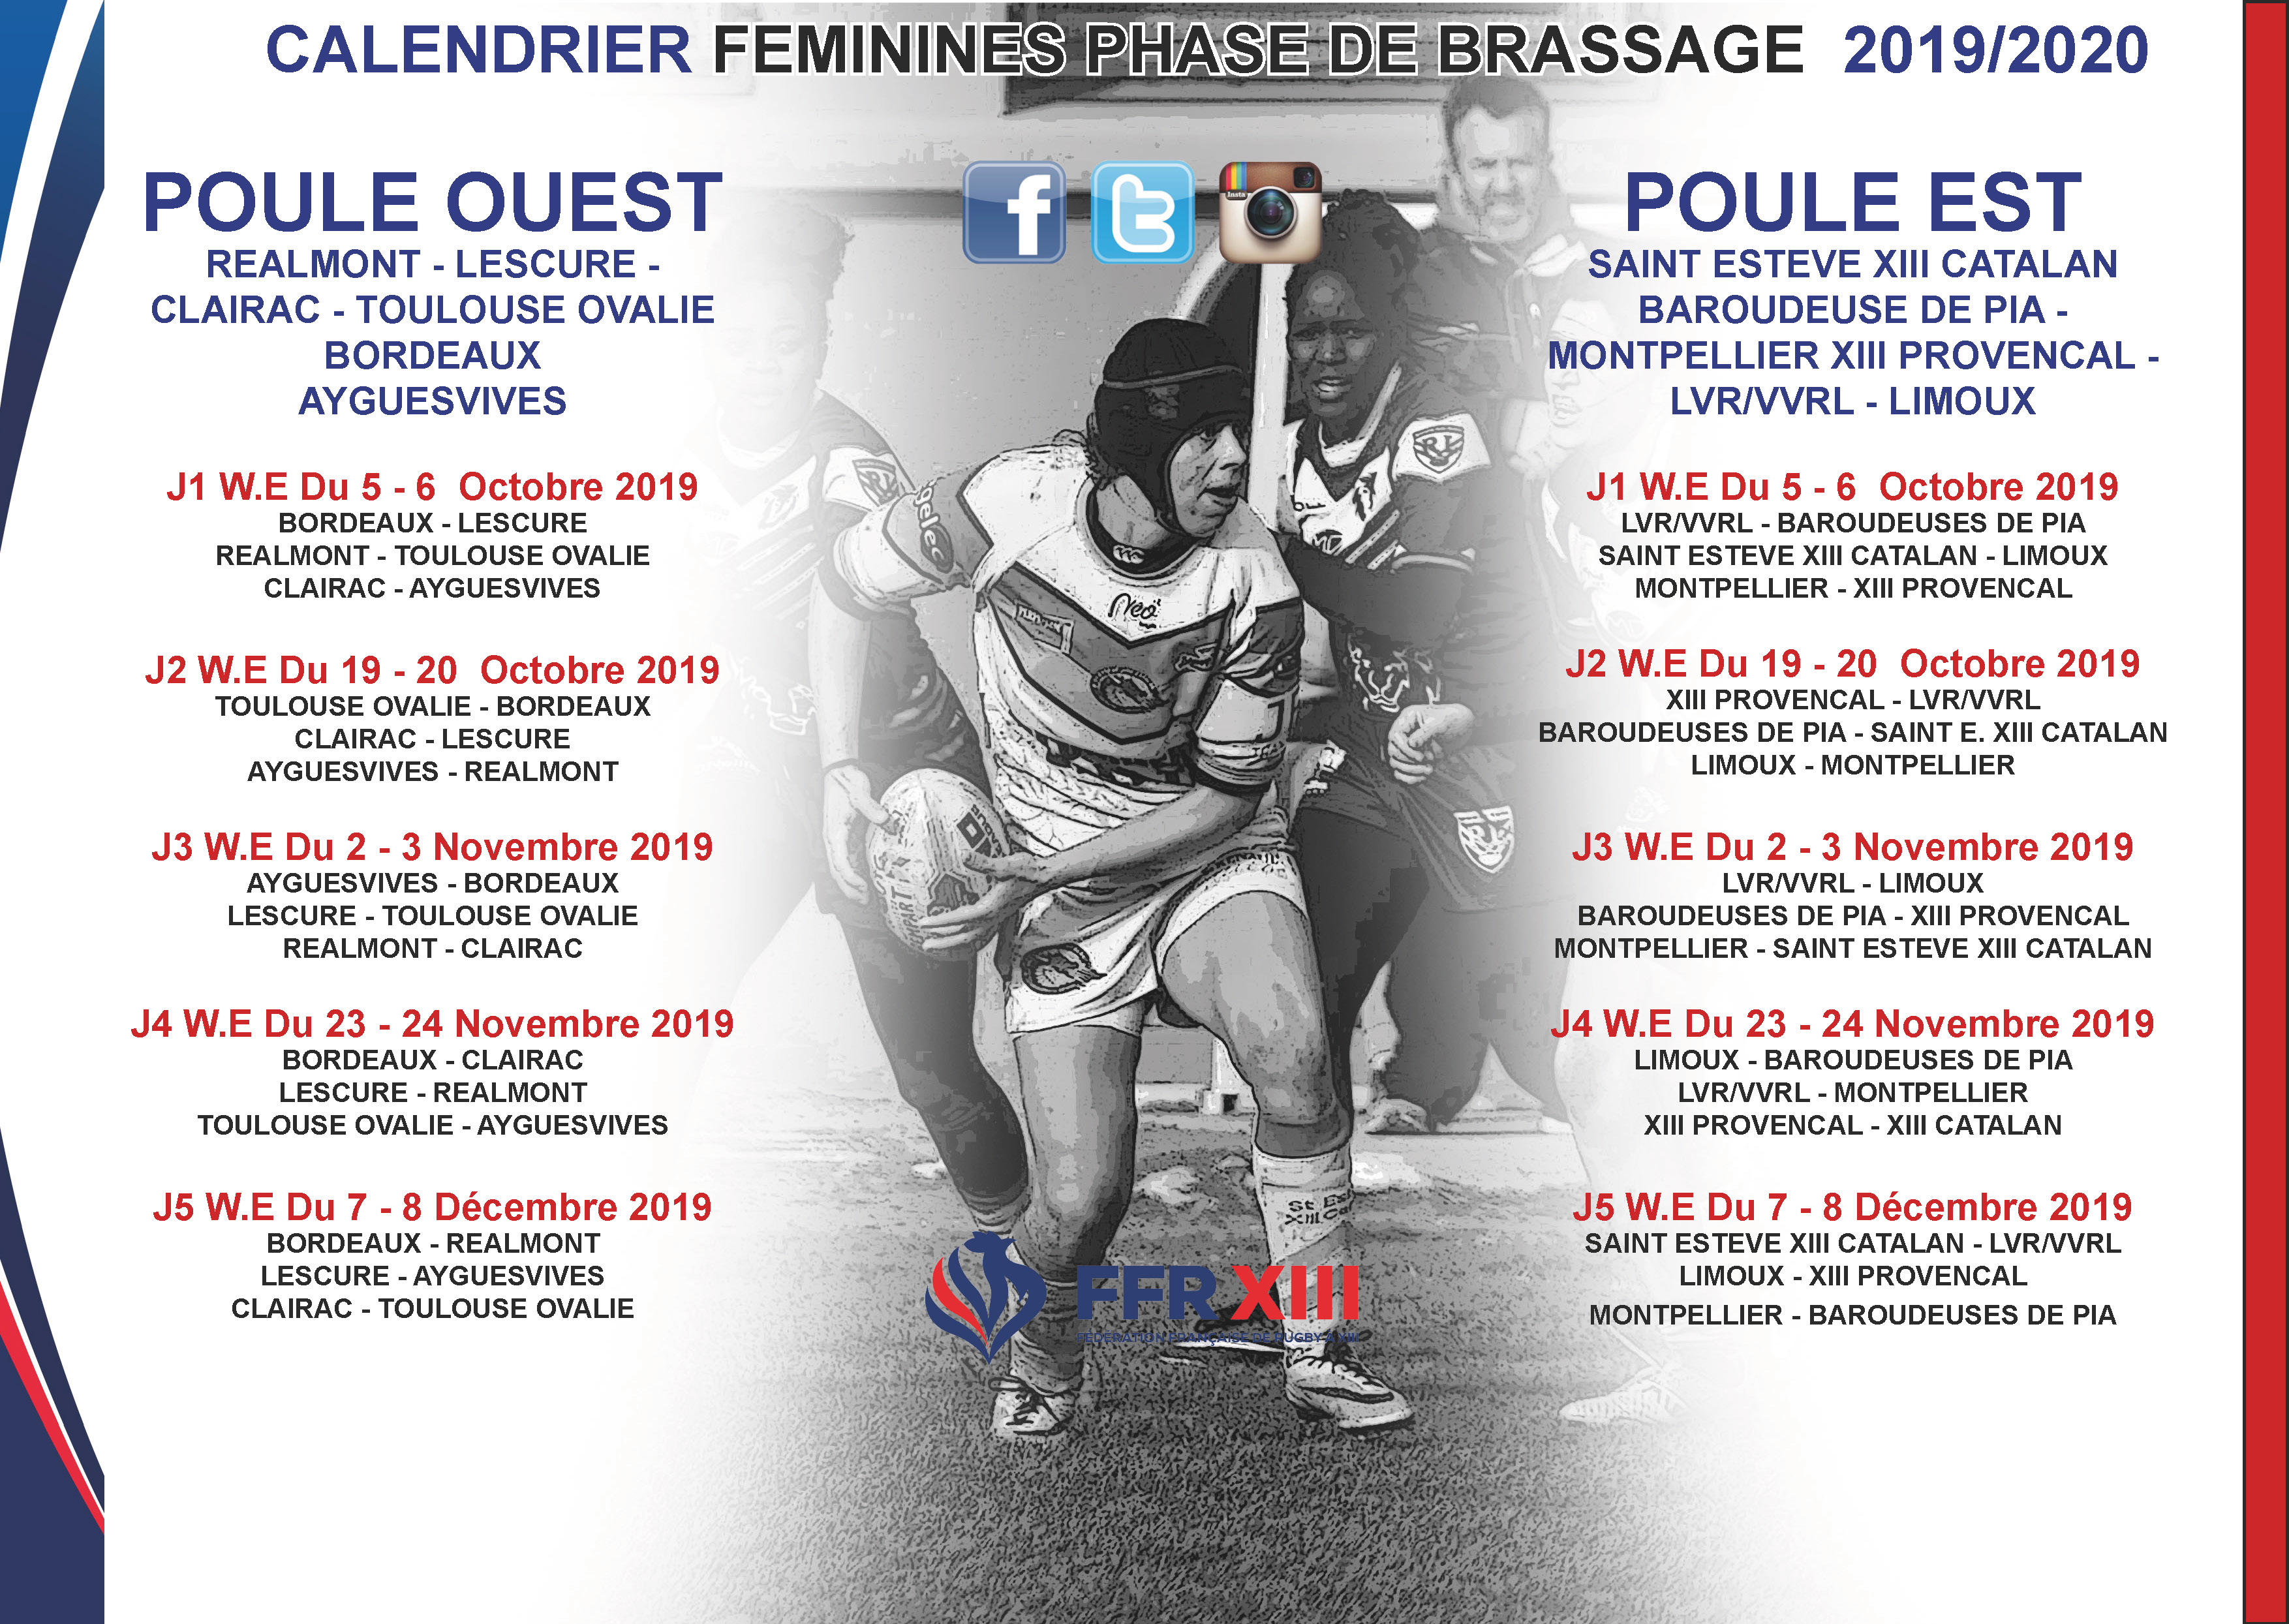 Calendrier 2020 Rugby.Les Calendriers Feminines Saison 2019 2020 Disponibles